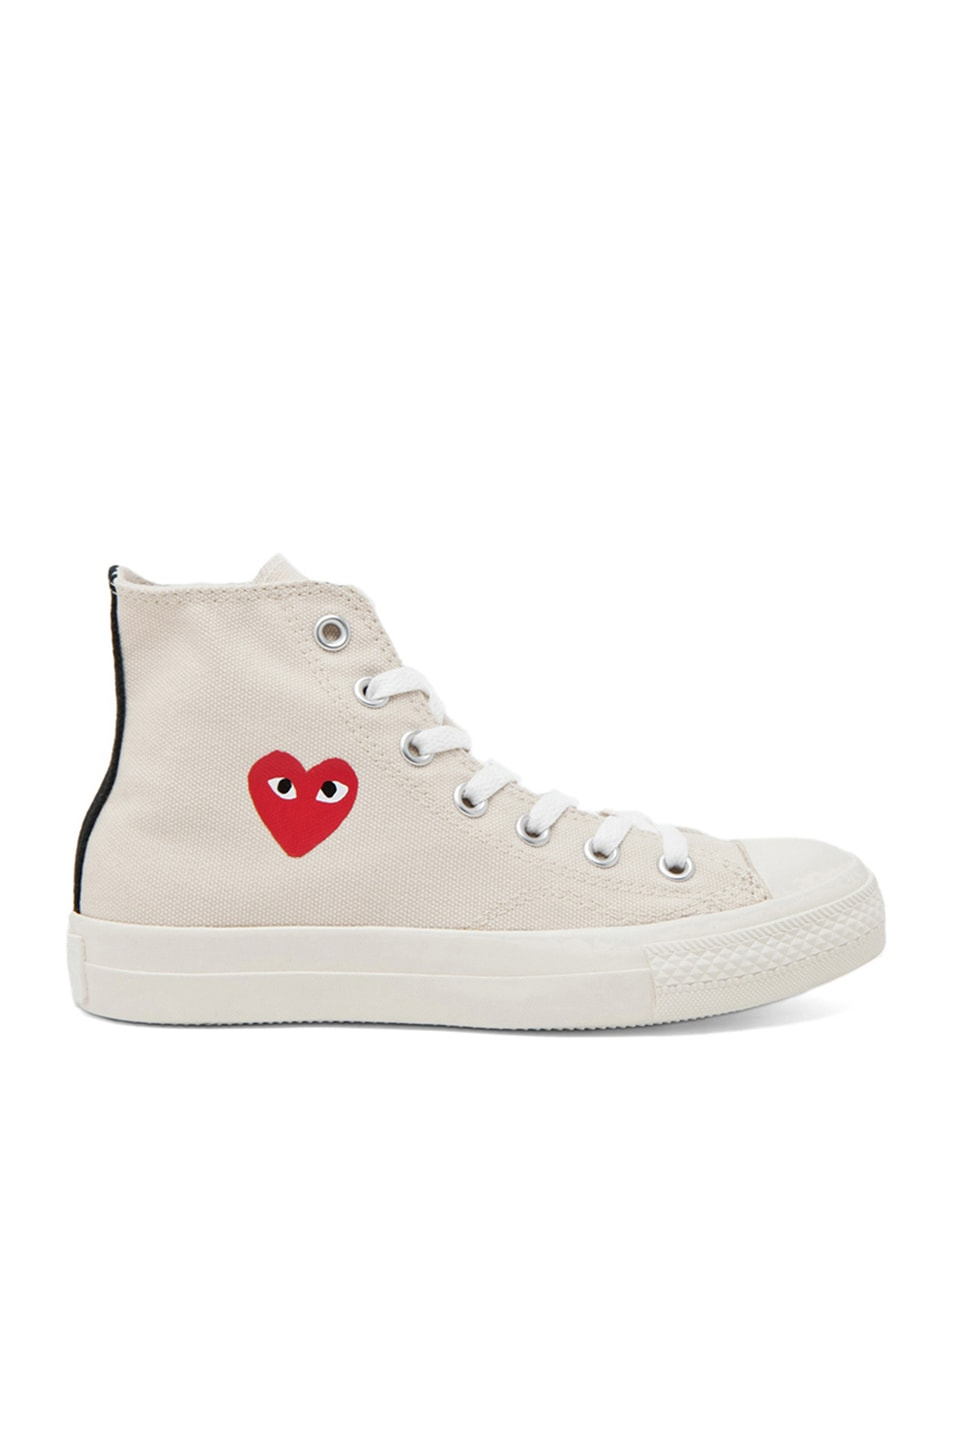 comme des garcons converse high top white